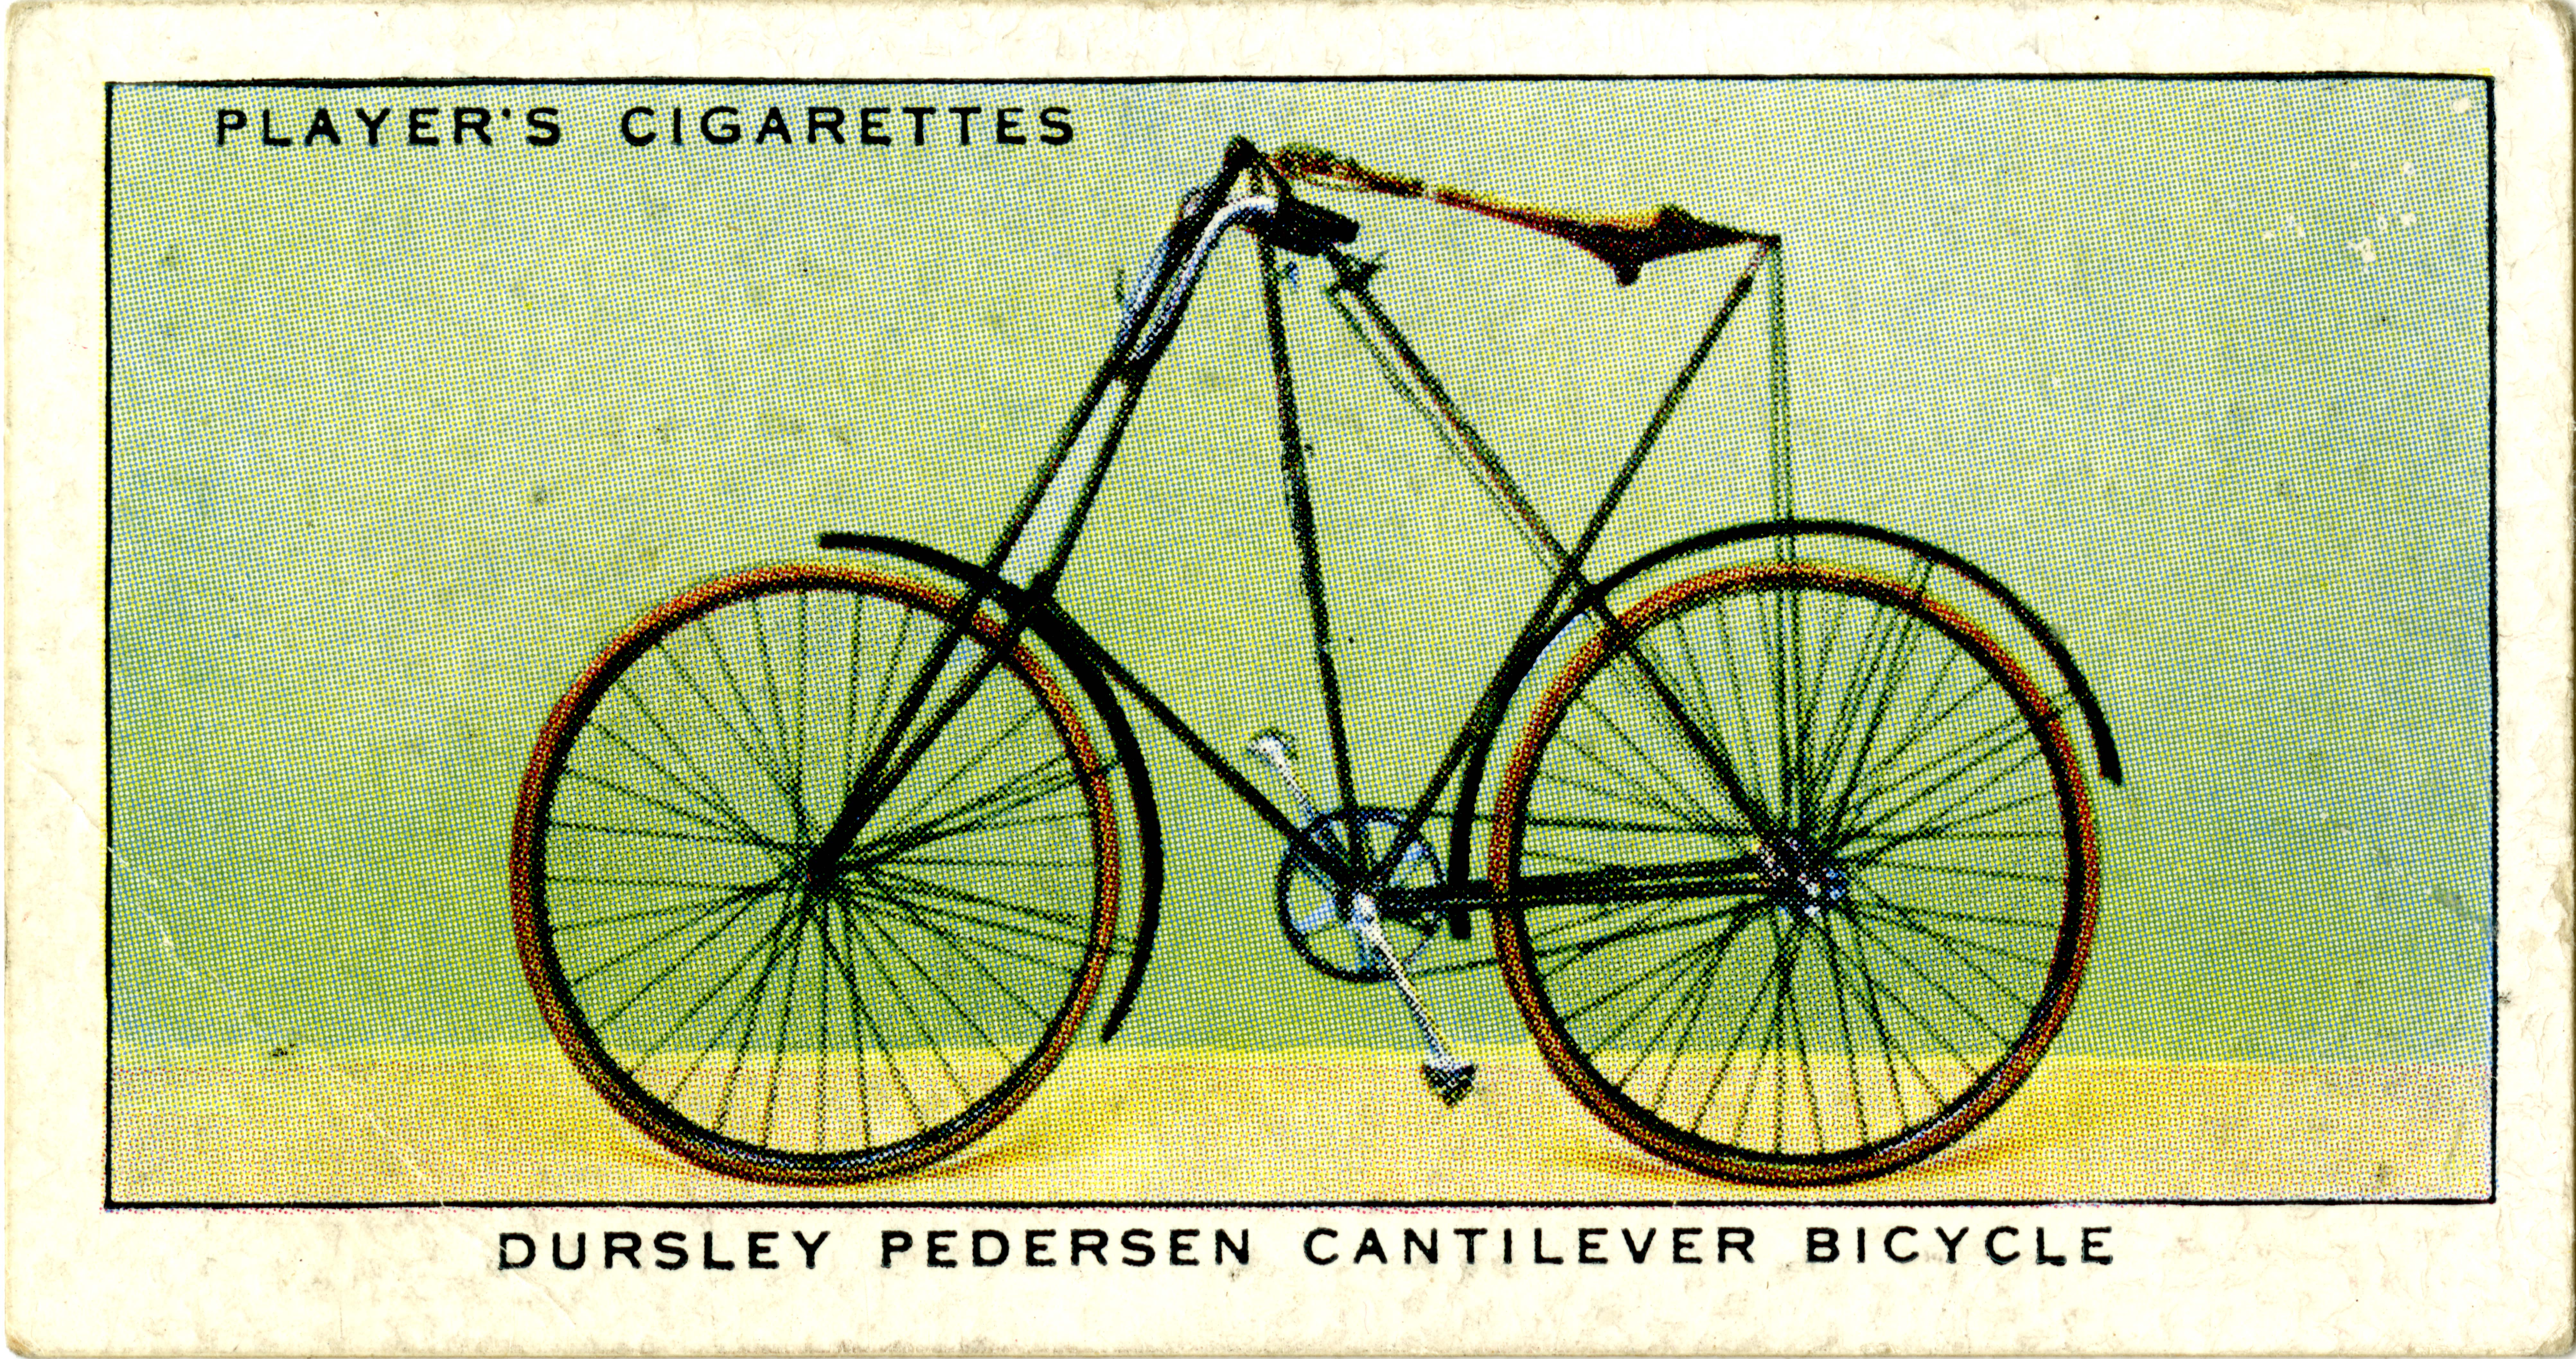 Players trading card, Dursley Pederson Cantilever Bicycle, undated